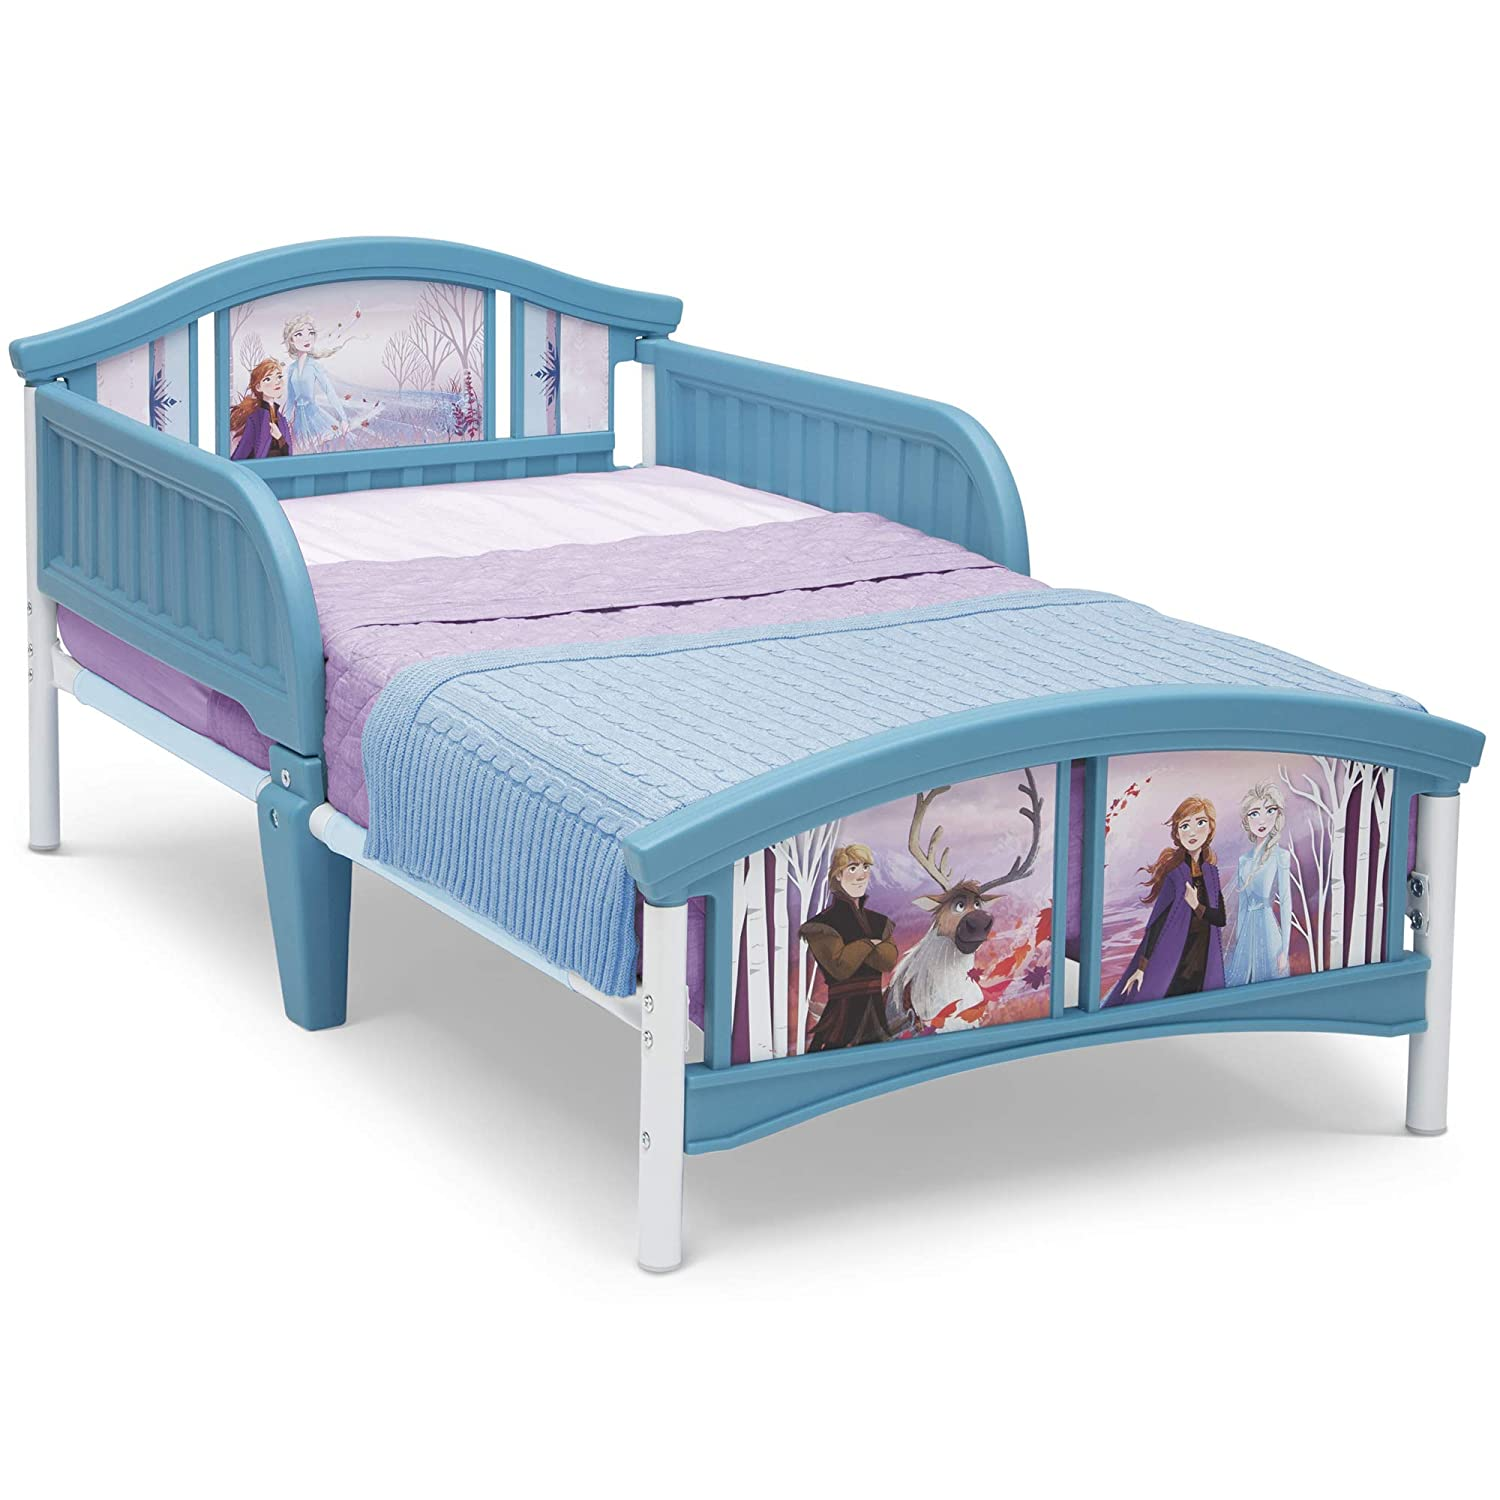 Delta Children Plastic Toddler Bed, Disney Frozen II